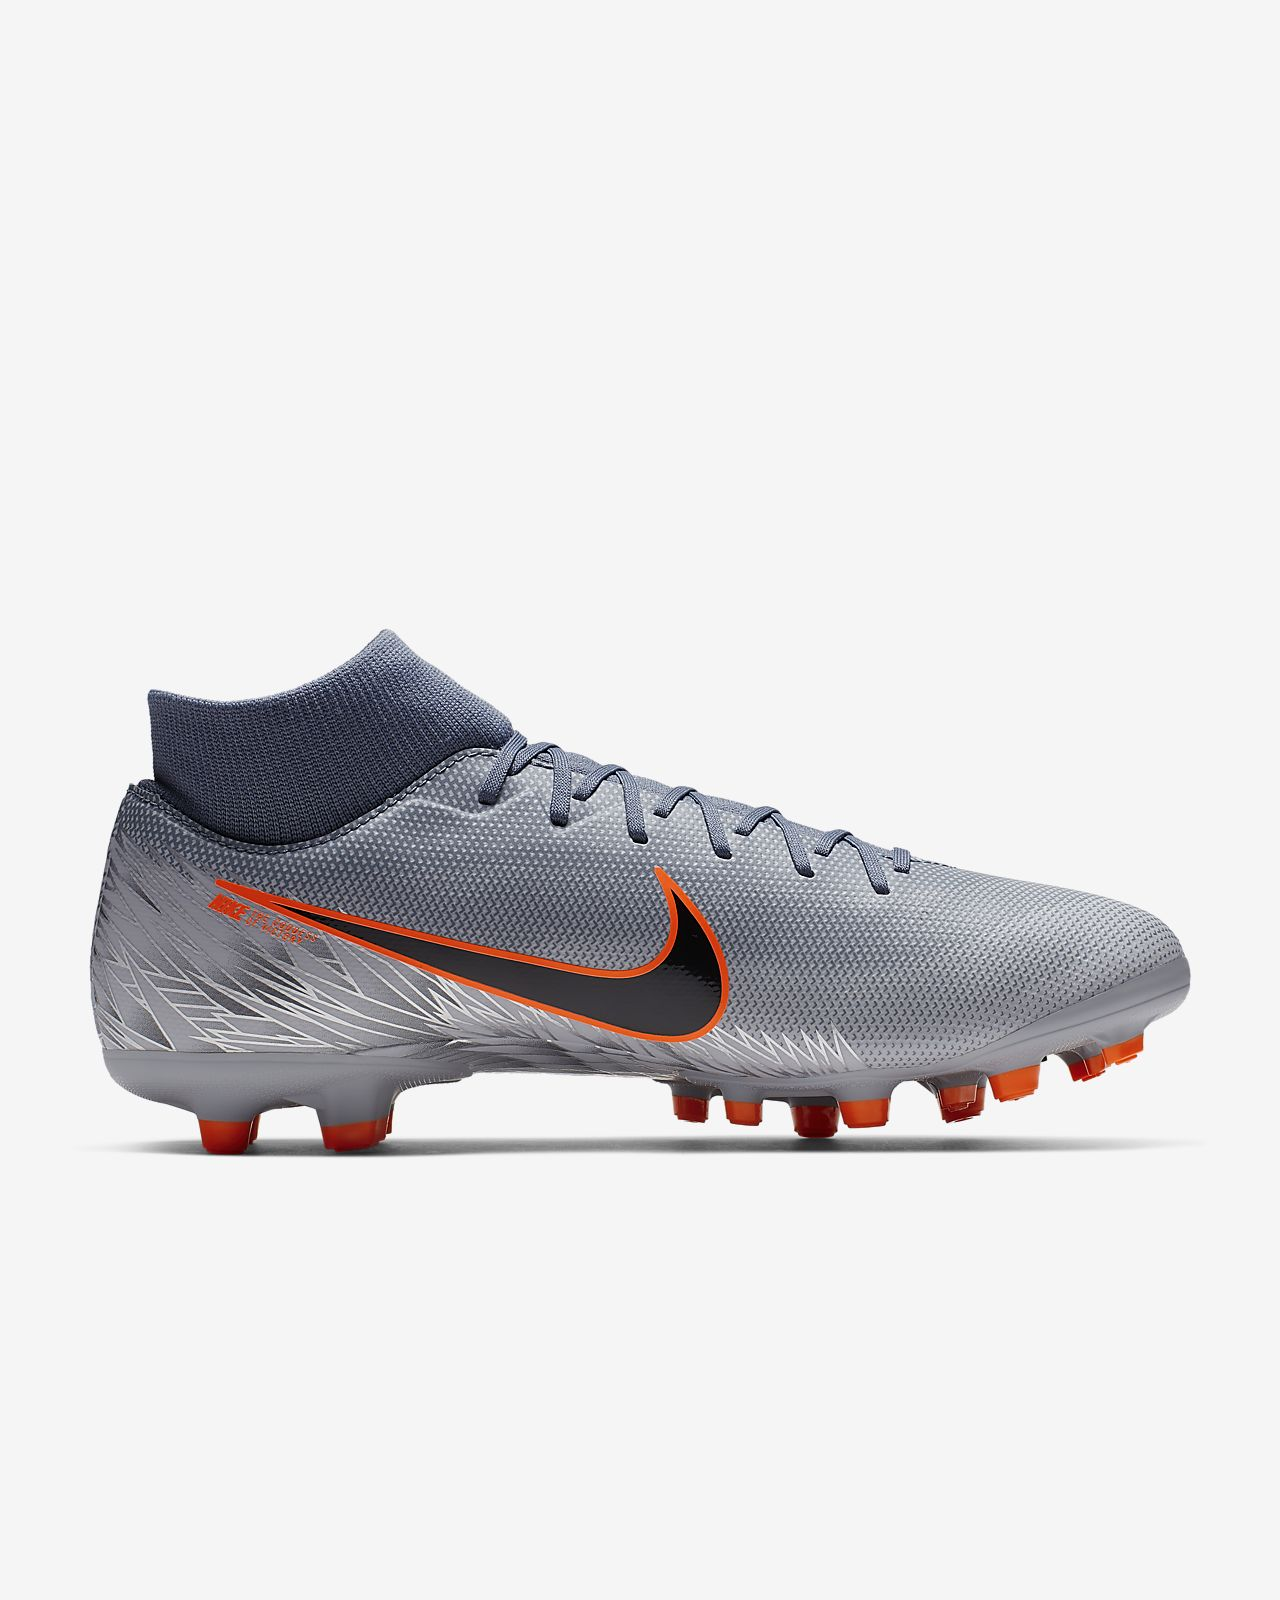 24b90d180 ... Nike Mercurial Superfly 6 Academy MG Multi-Ground Football Boot